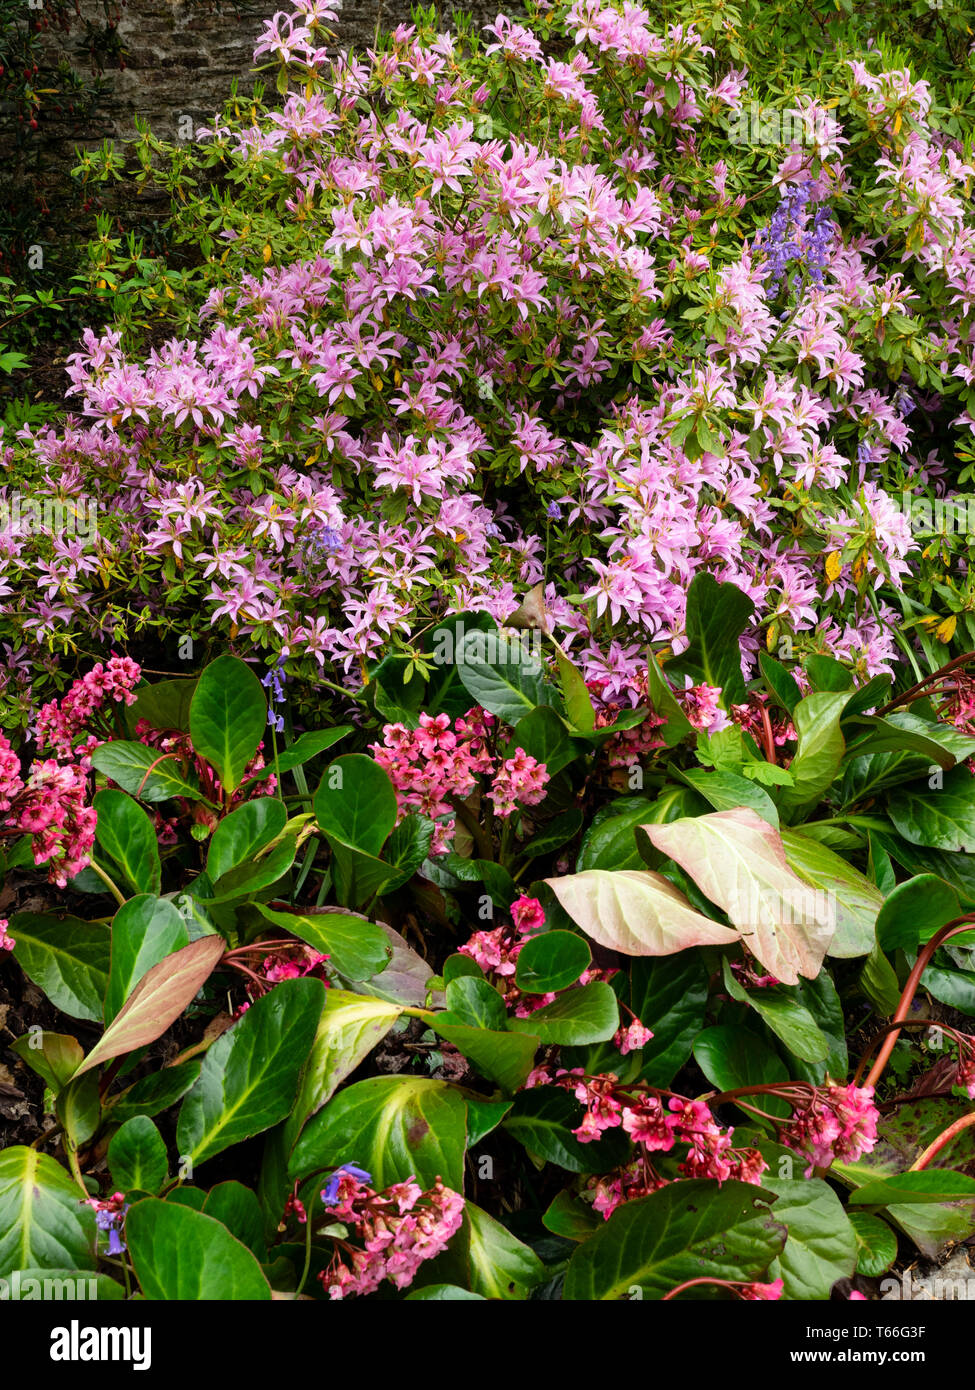 Bergenia 'Bressingham Salmon, shares a bed with the evergreen azalea, Rhododendron 'Koromo shikibu' in a spring garden Stock Photo